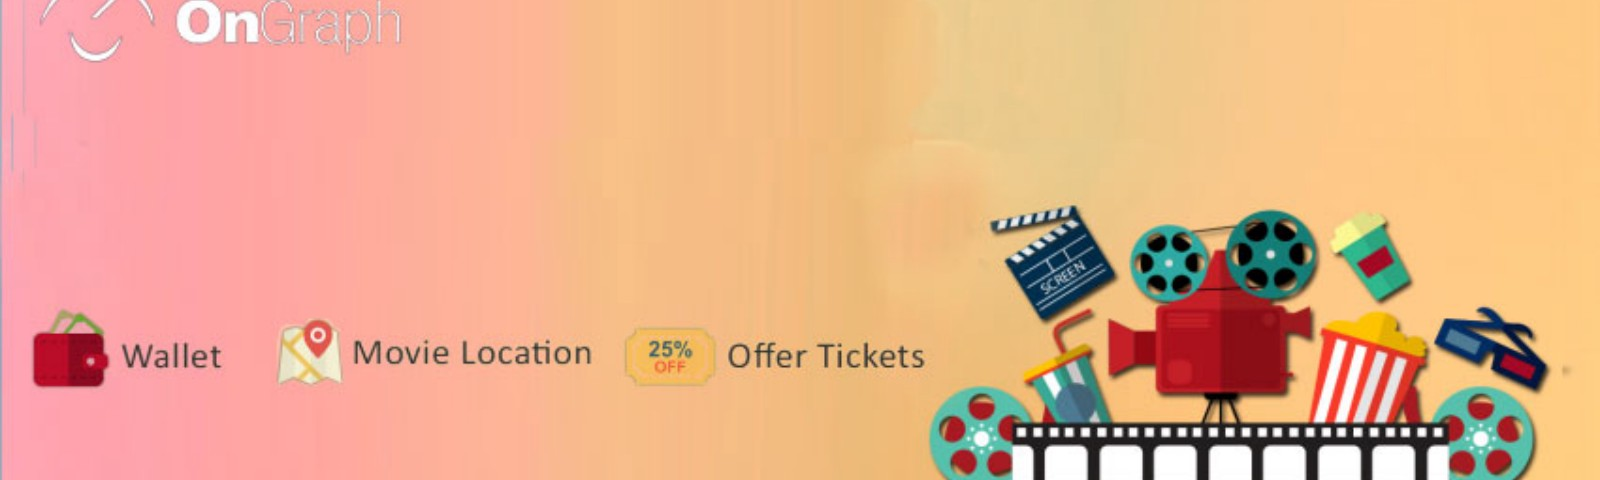 Movie And Entertainment Ticket Booking App Top Features And Development Cost Appfutura